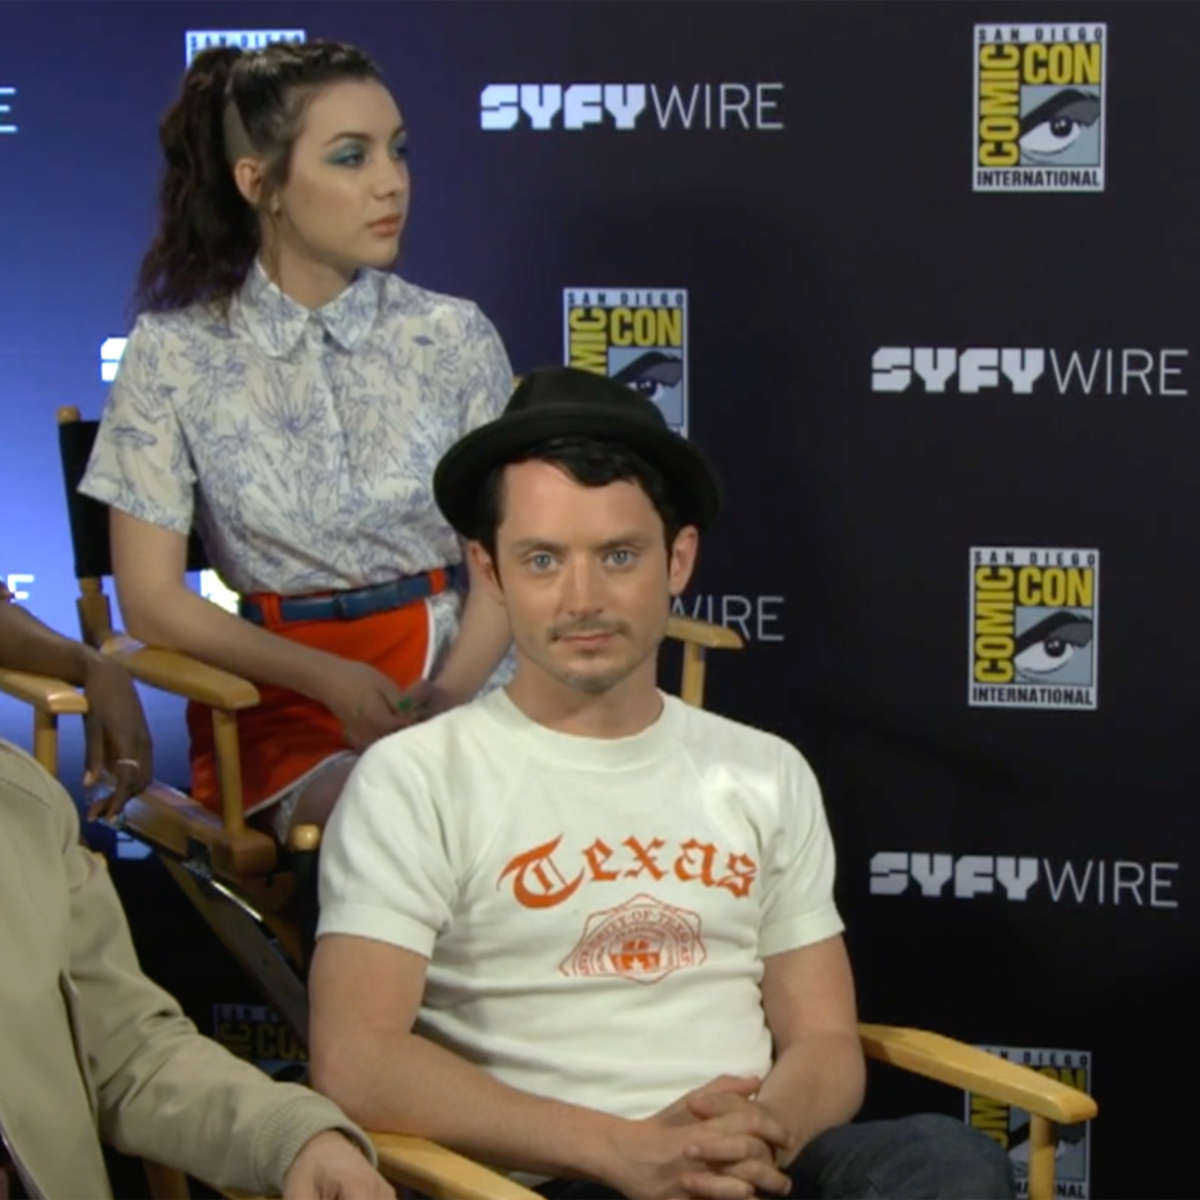 dirk-gently-cast-sdcc-hero.jpg